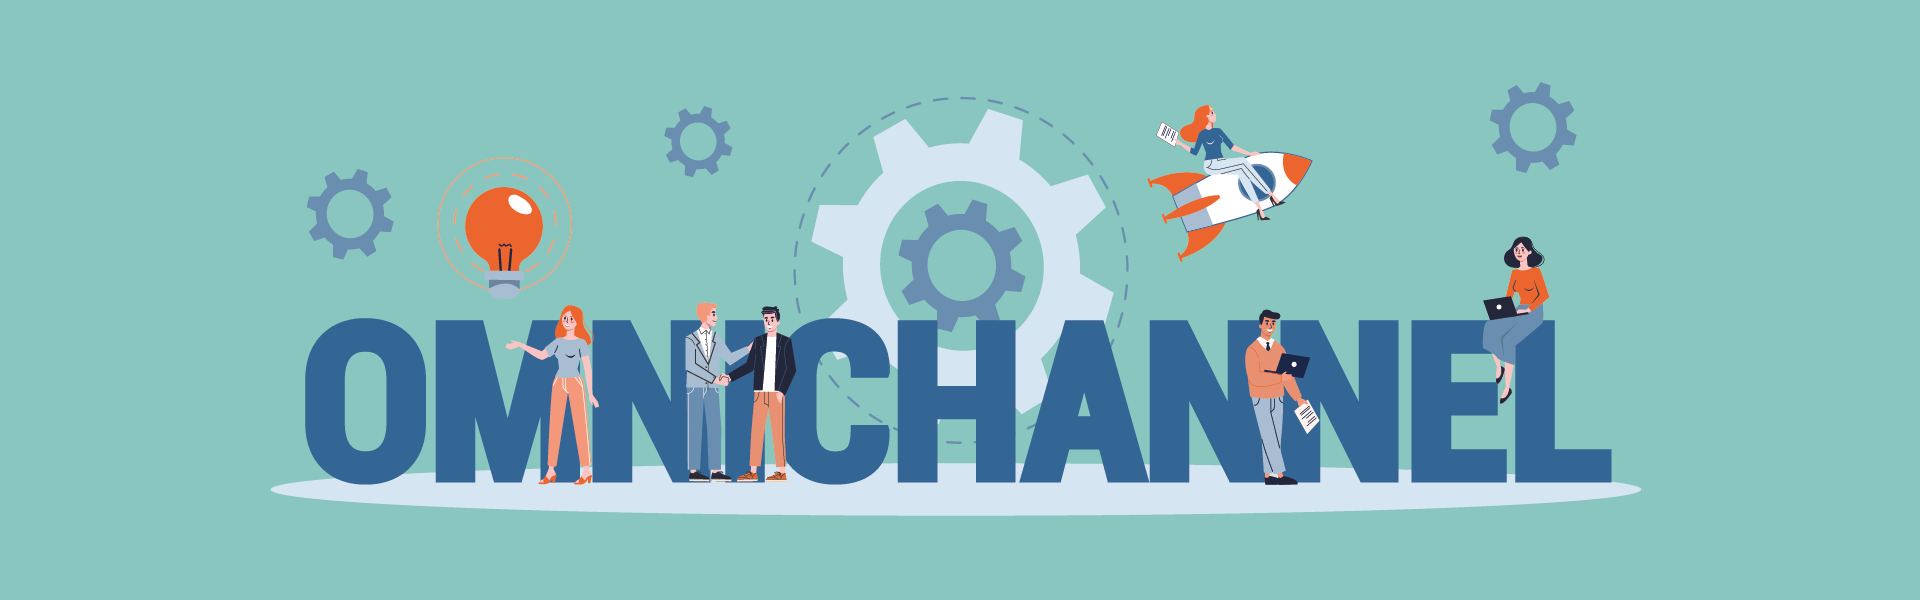 5-Ways-to-Improve-Omnichannel-Customer-Experience.